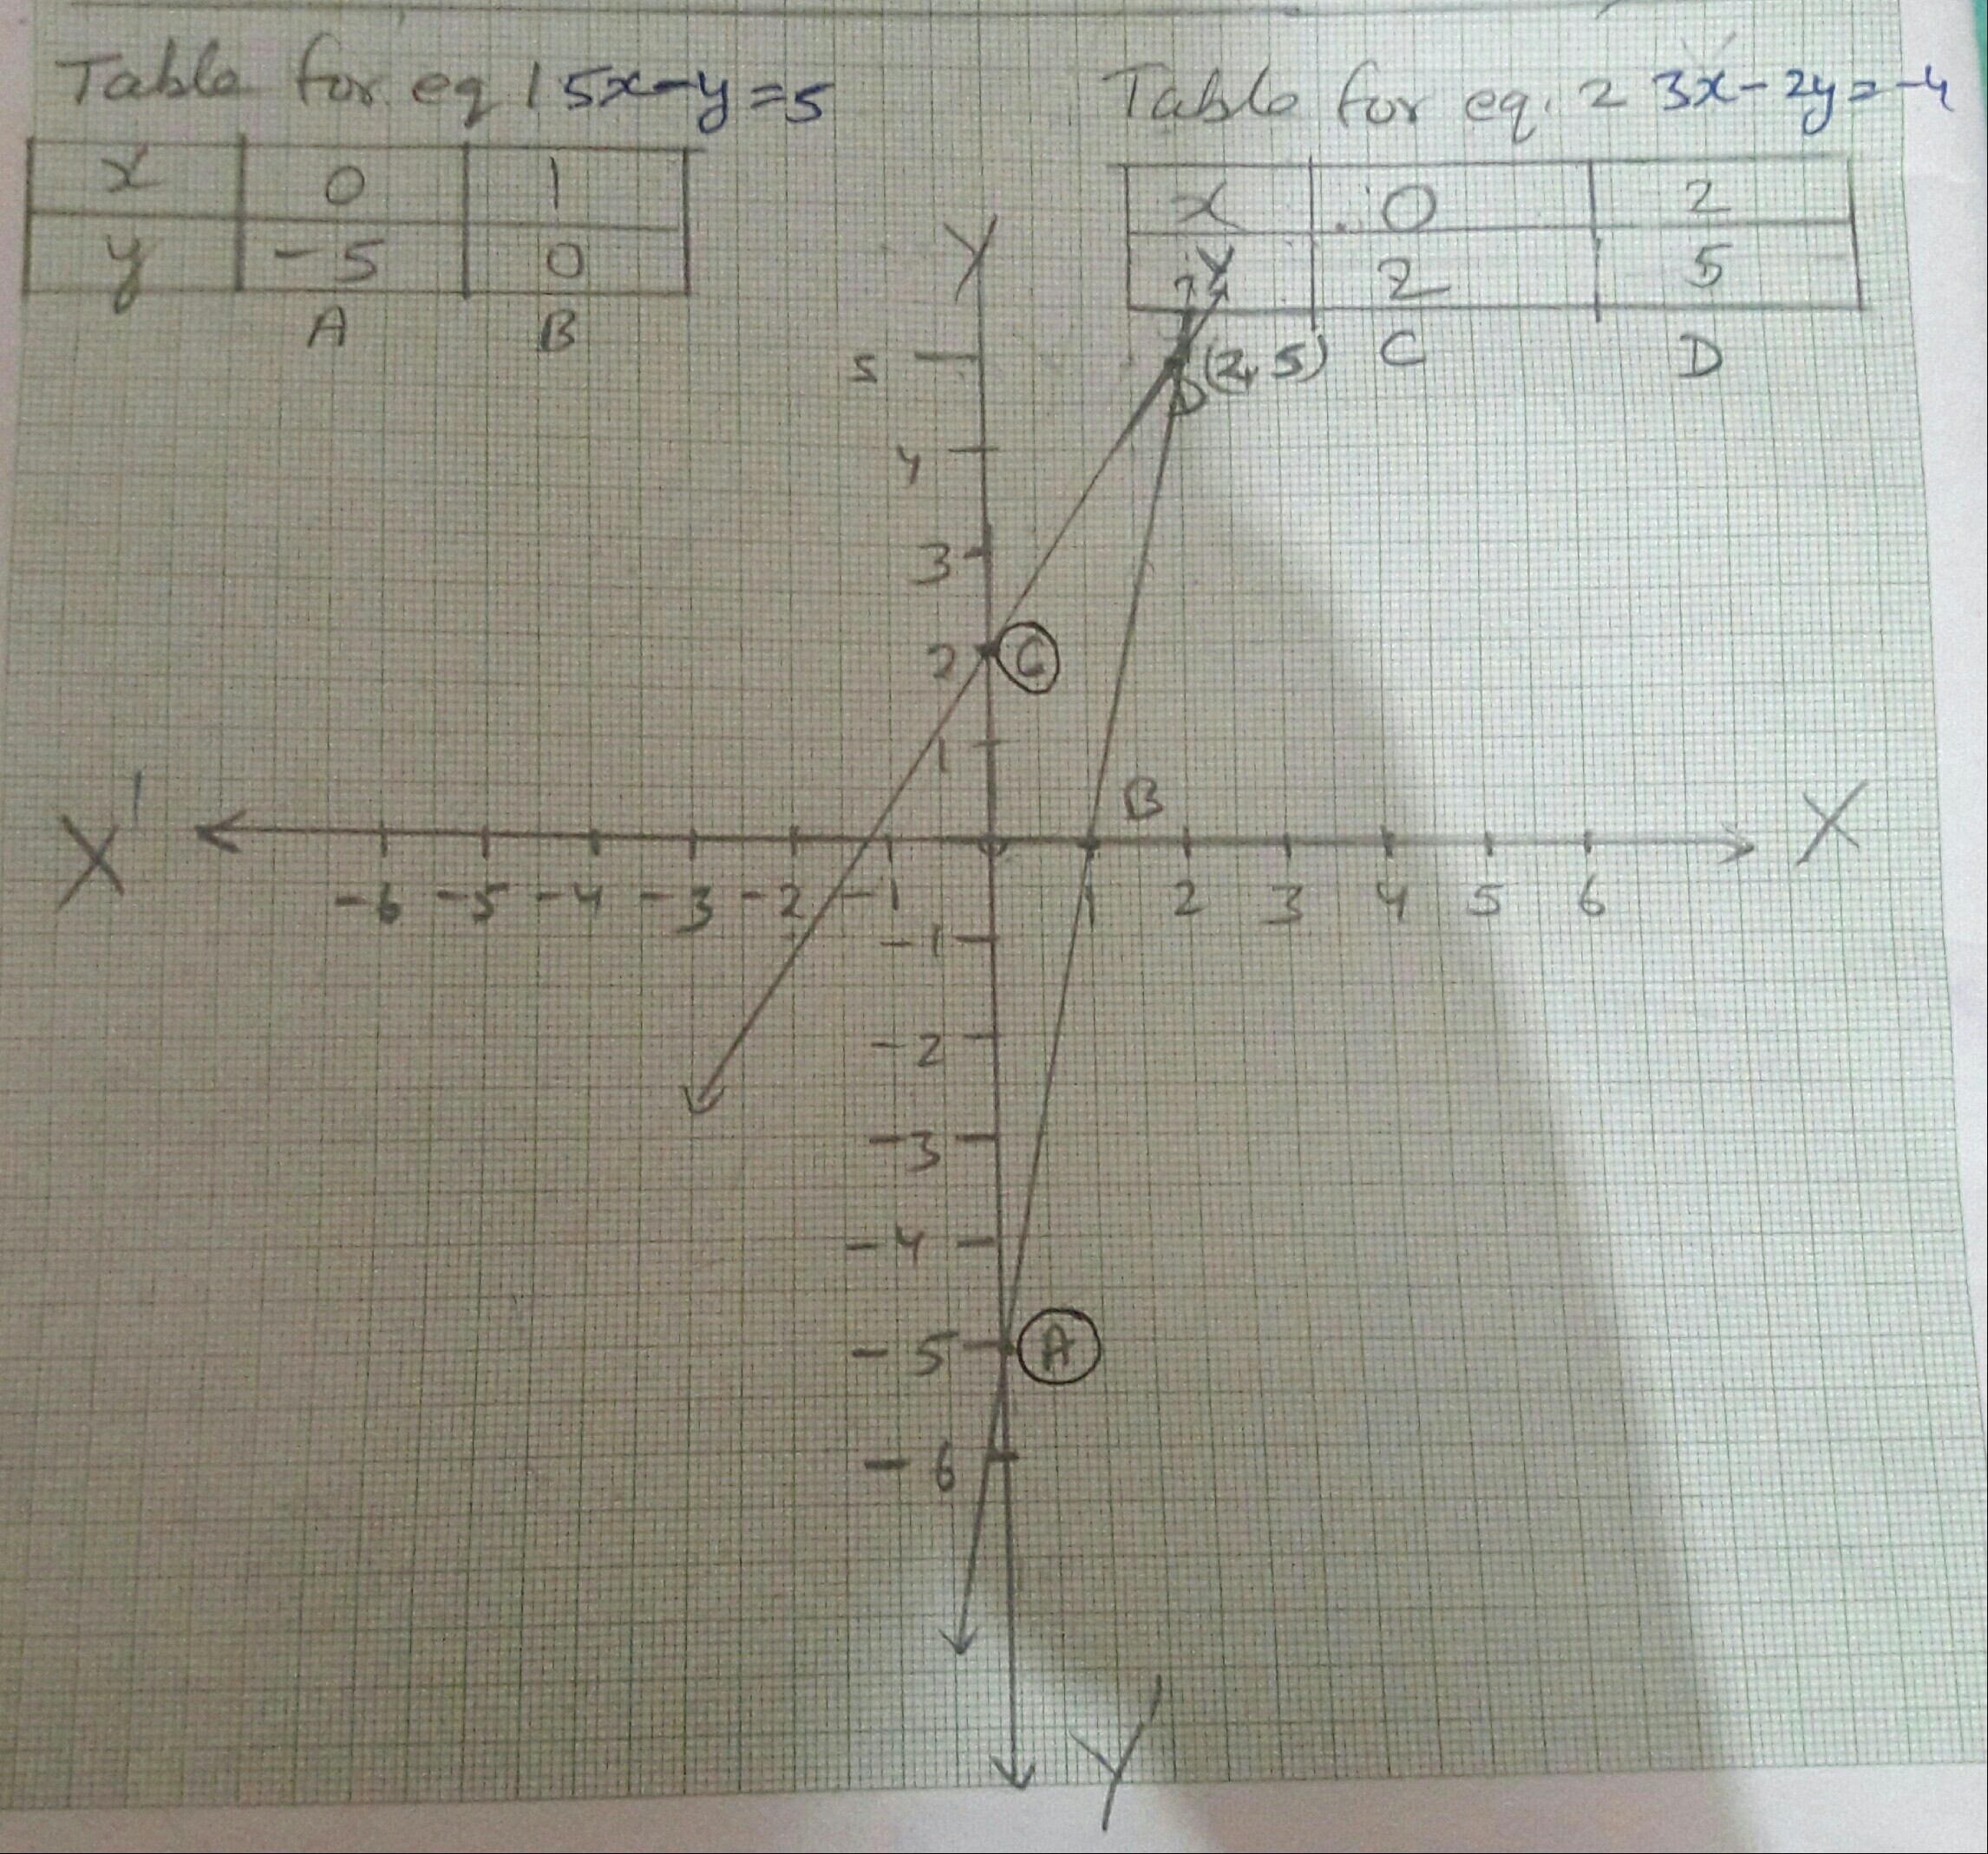 Solve Graphically The Pair Of Linear Equations 5x Y 5